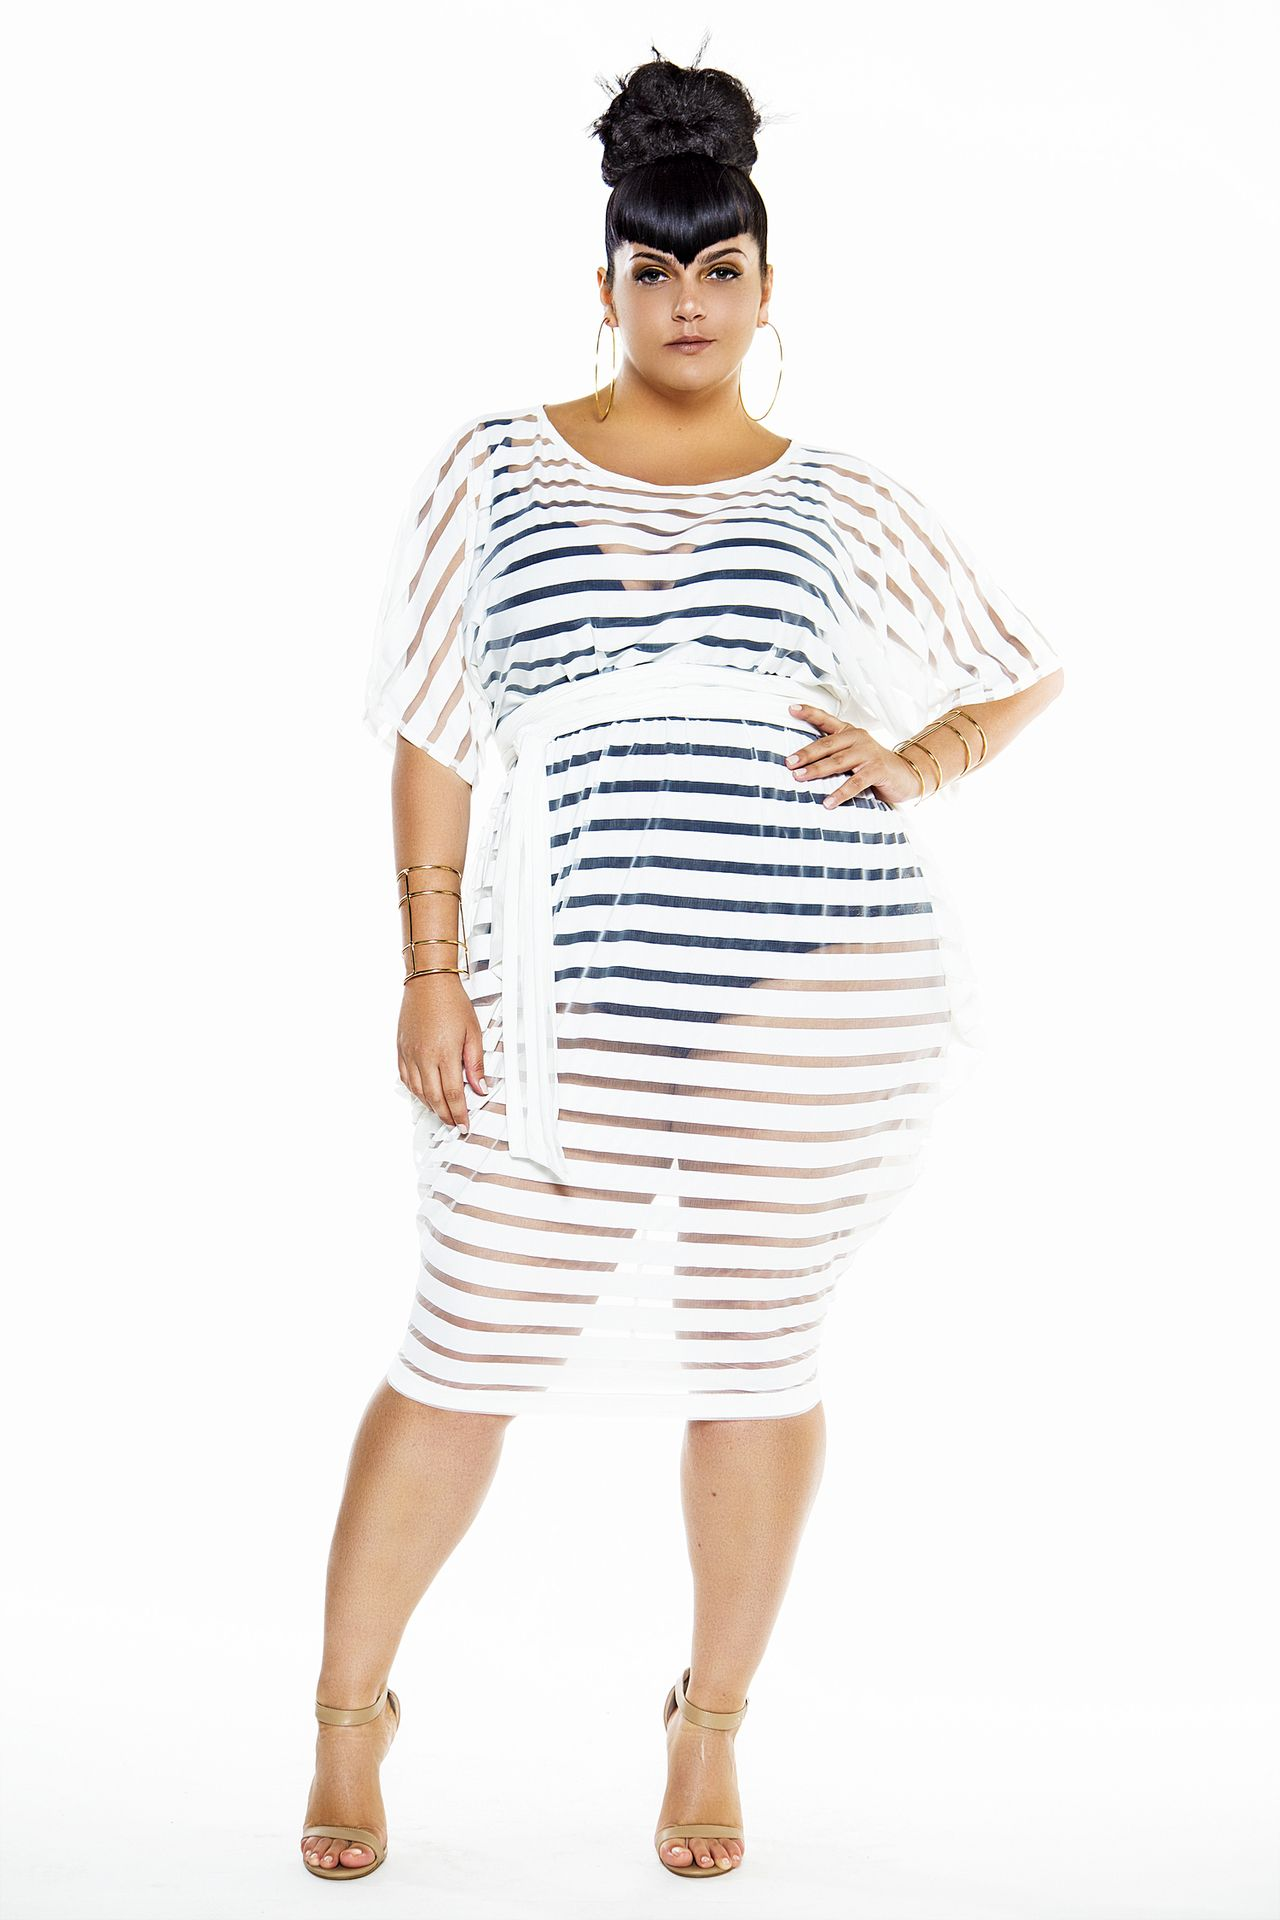 e8fae087334c1 Where's the Pool Party? Jibri Drops These HOT Plus Size Swim Cover-ups!